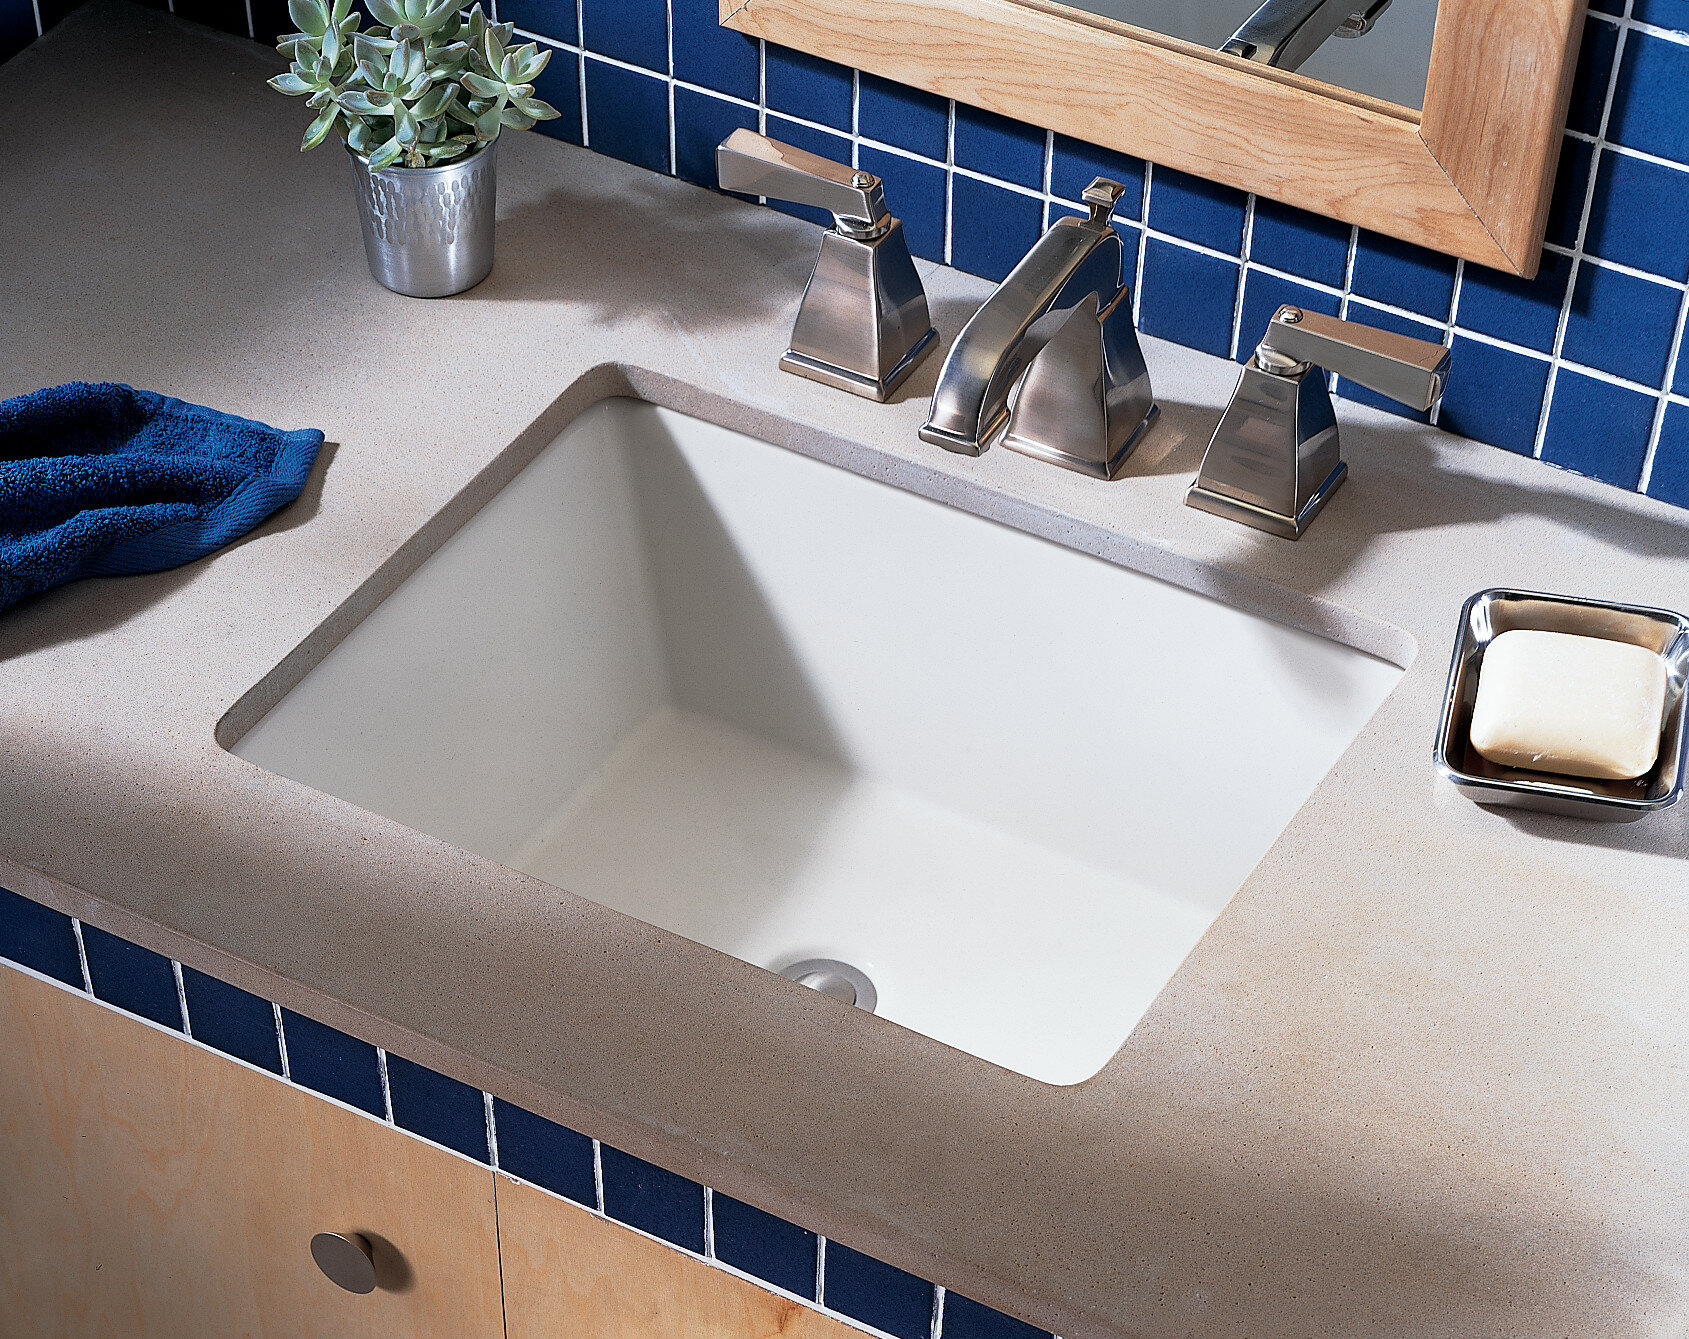 Exceptionnel American Standard Boulevard Ceramic Rectangular Undermount Bathroom Sink  With Overflow U0026 Reviews | Wayfair